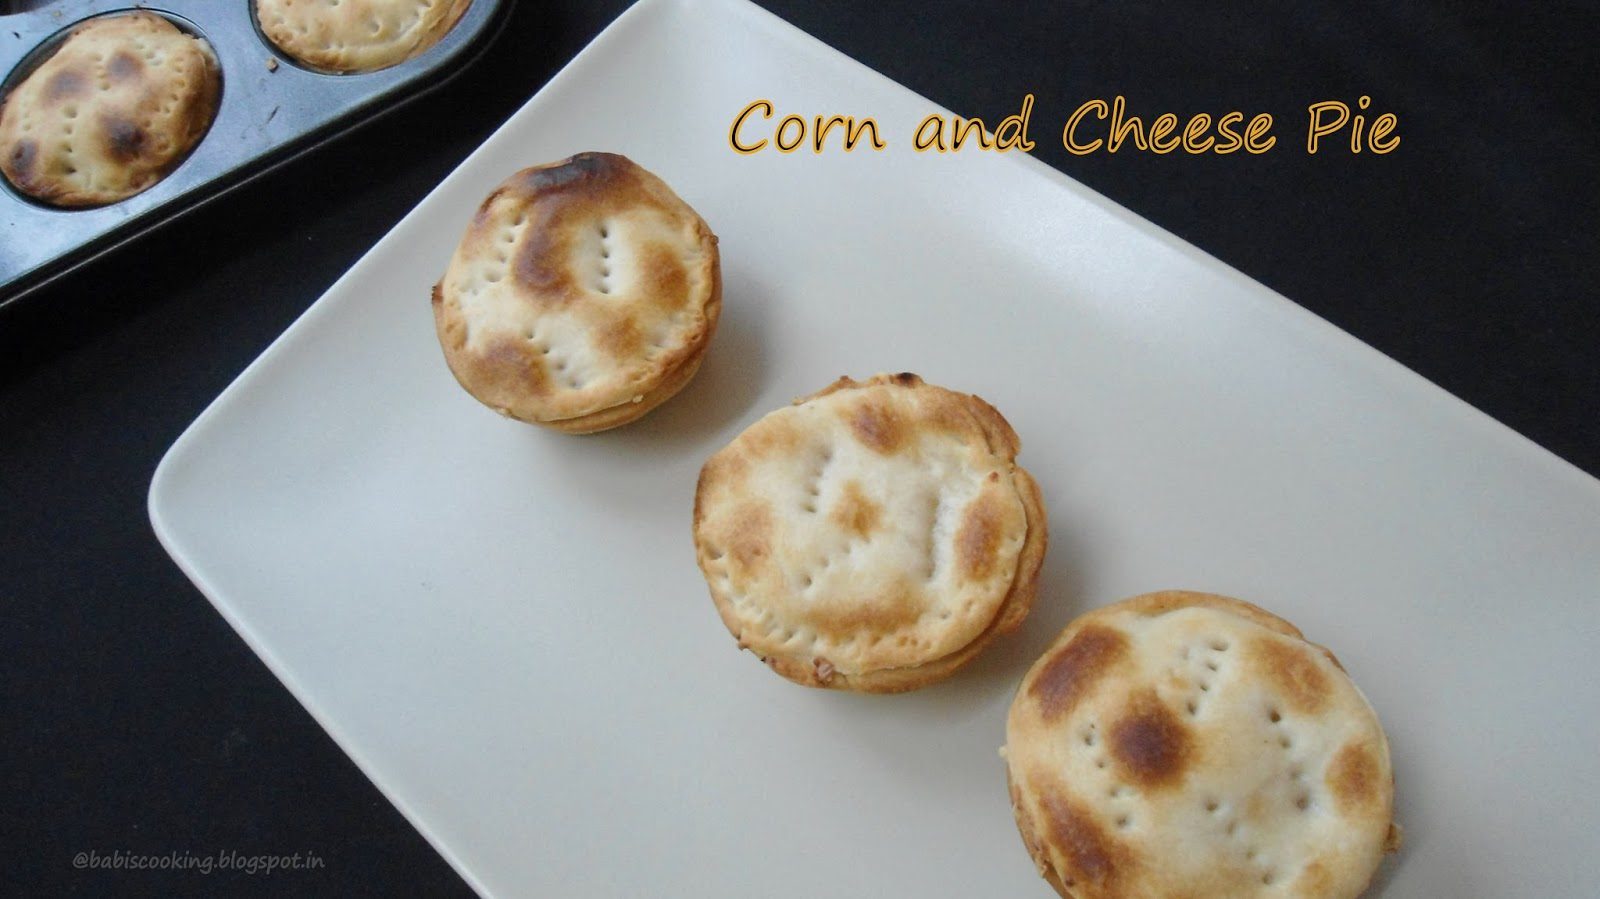 Corn and cheese pie